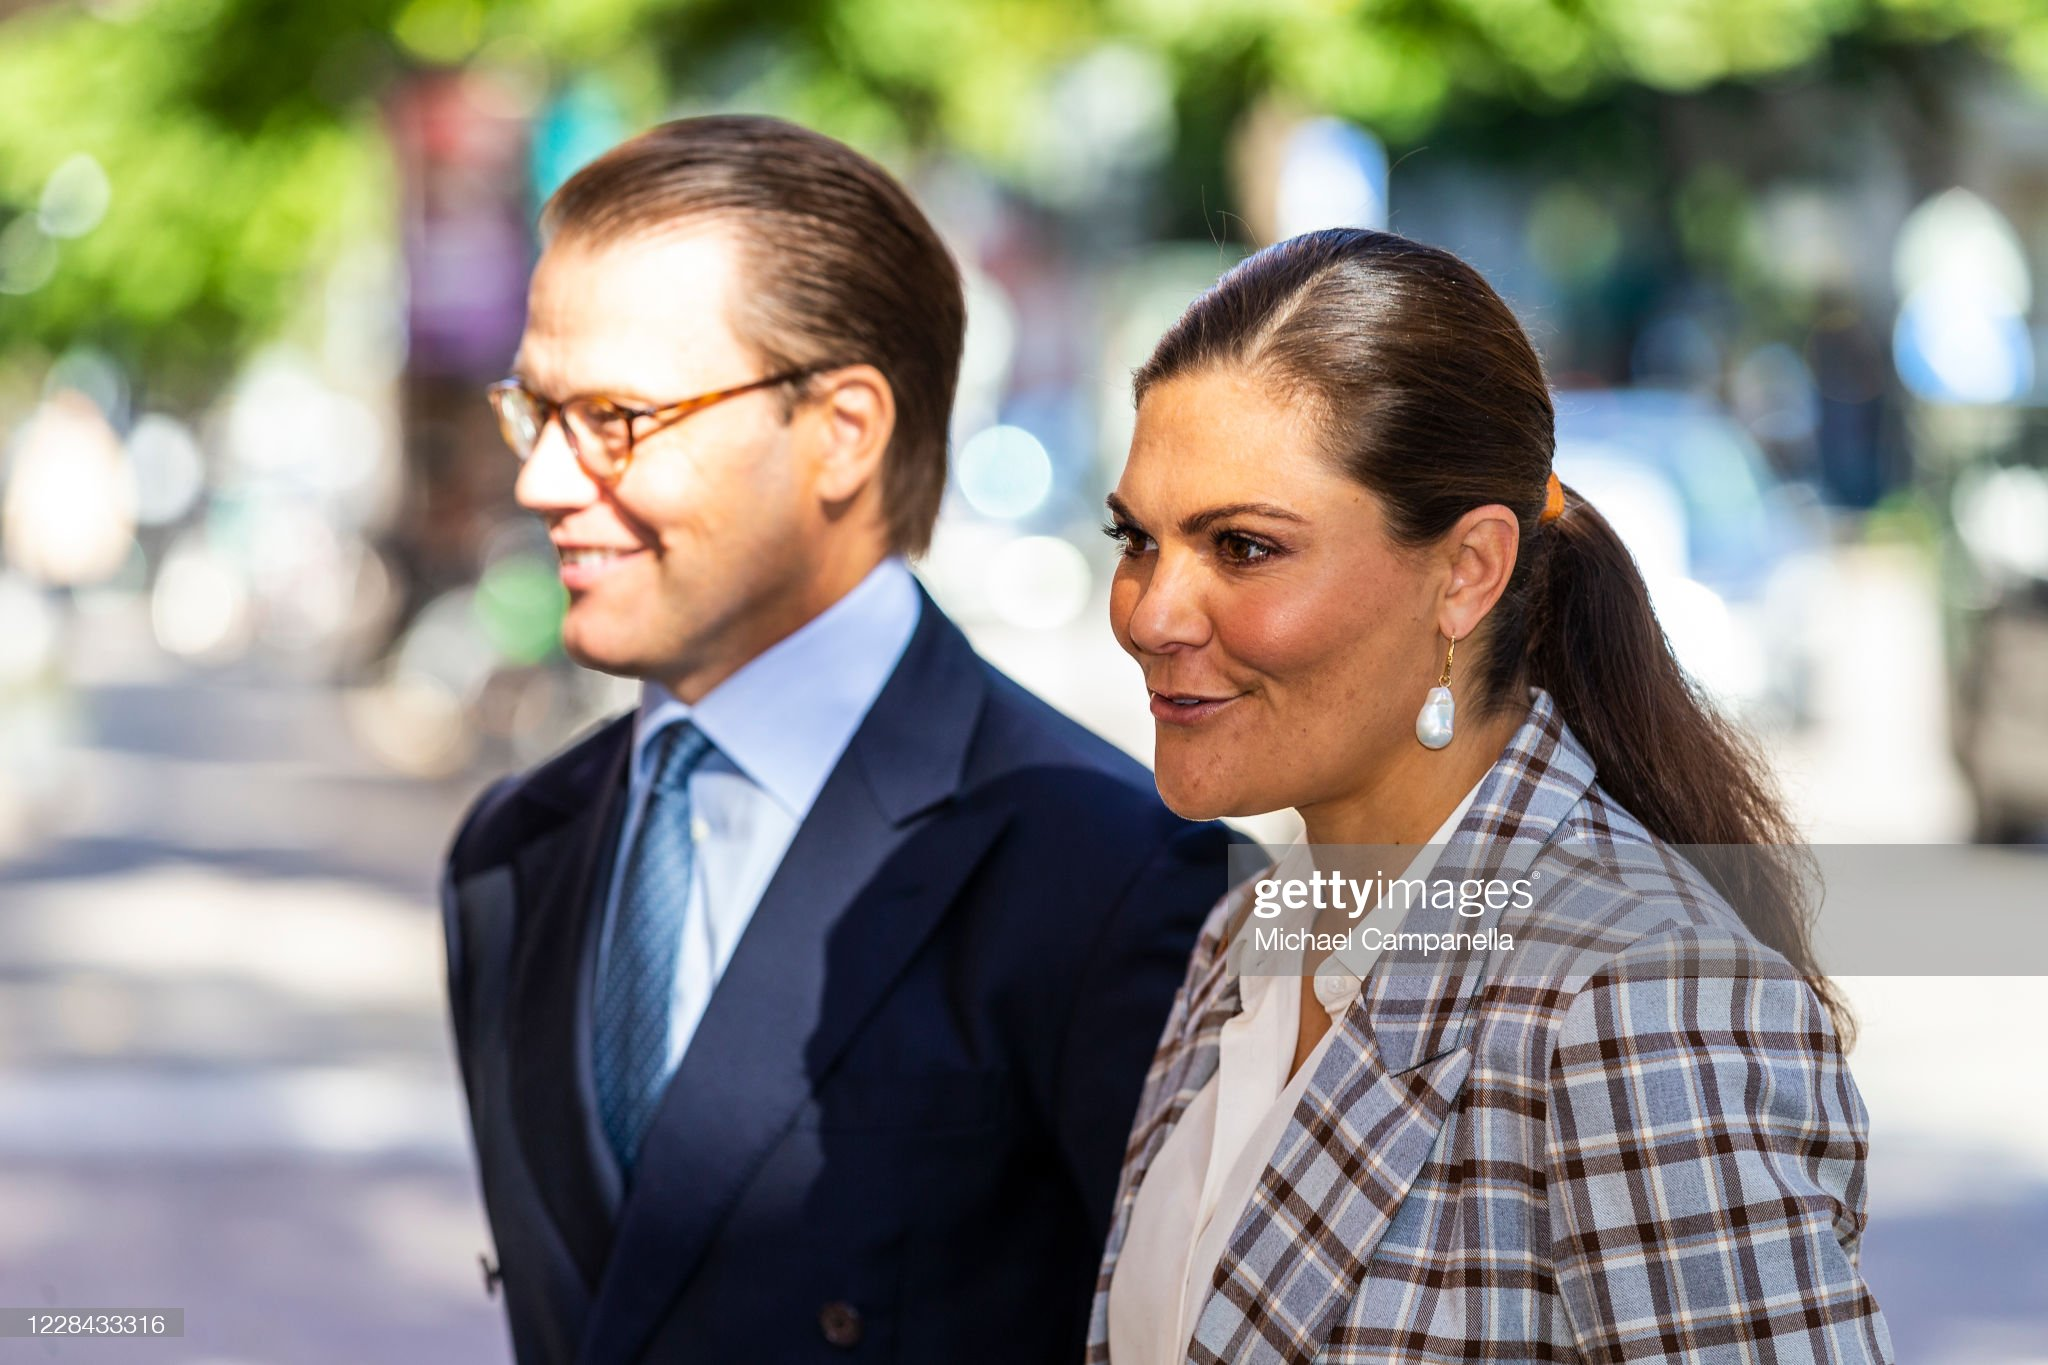 crown-princess-victoria-and-prince-daniel-of-sweden-visit-the-swedish-picture-id1228433316